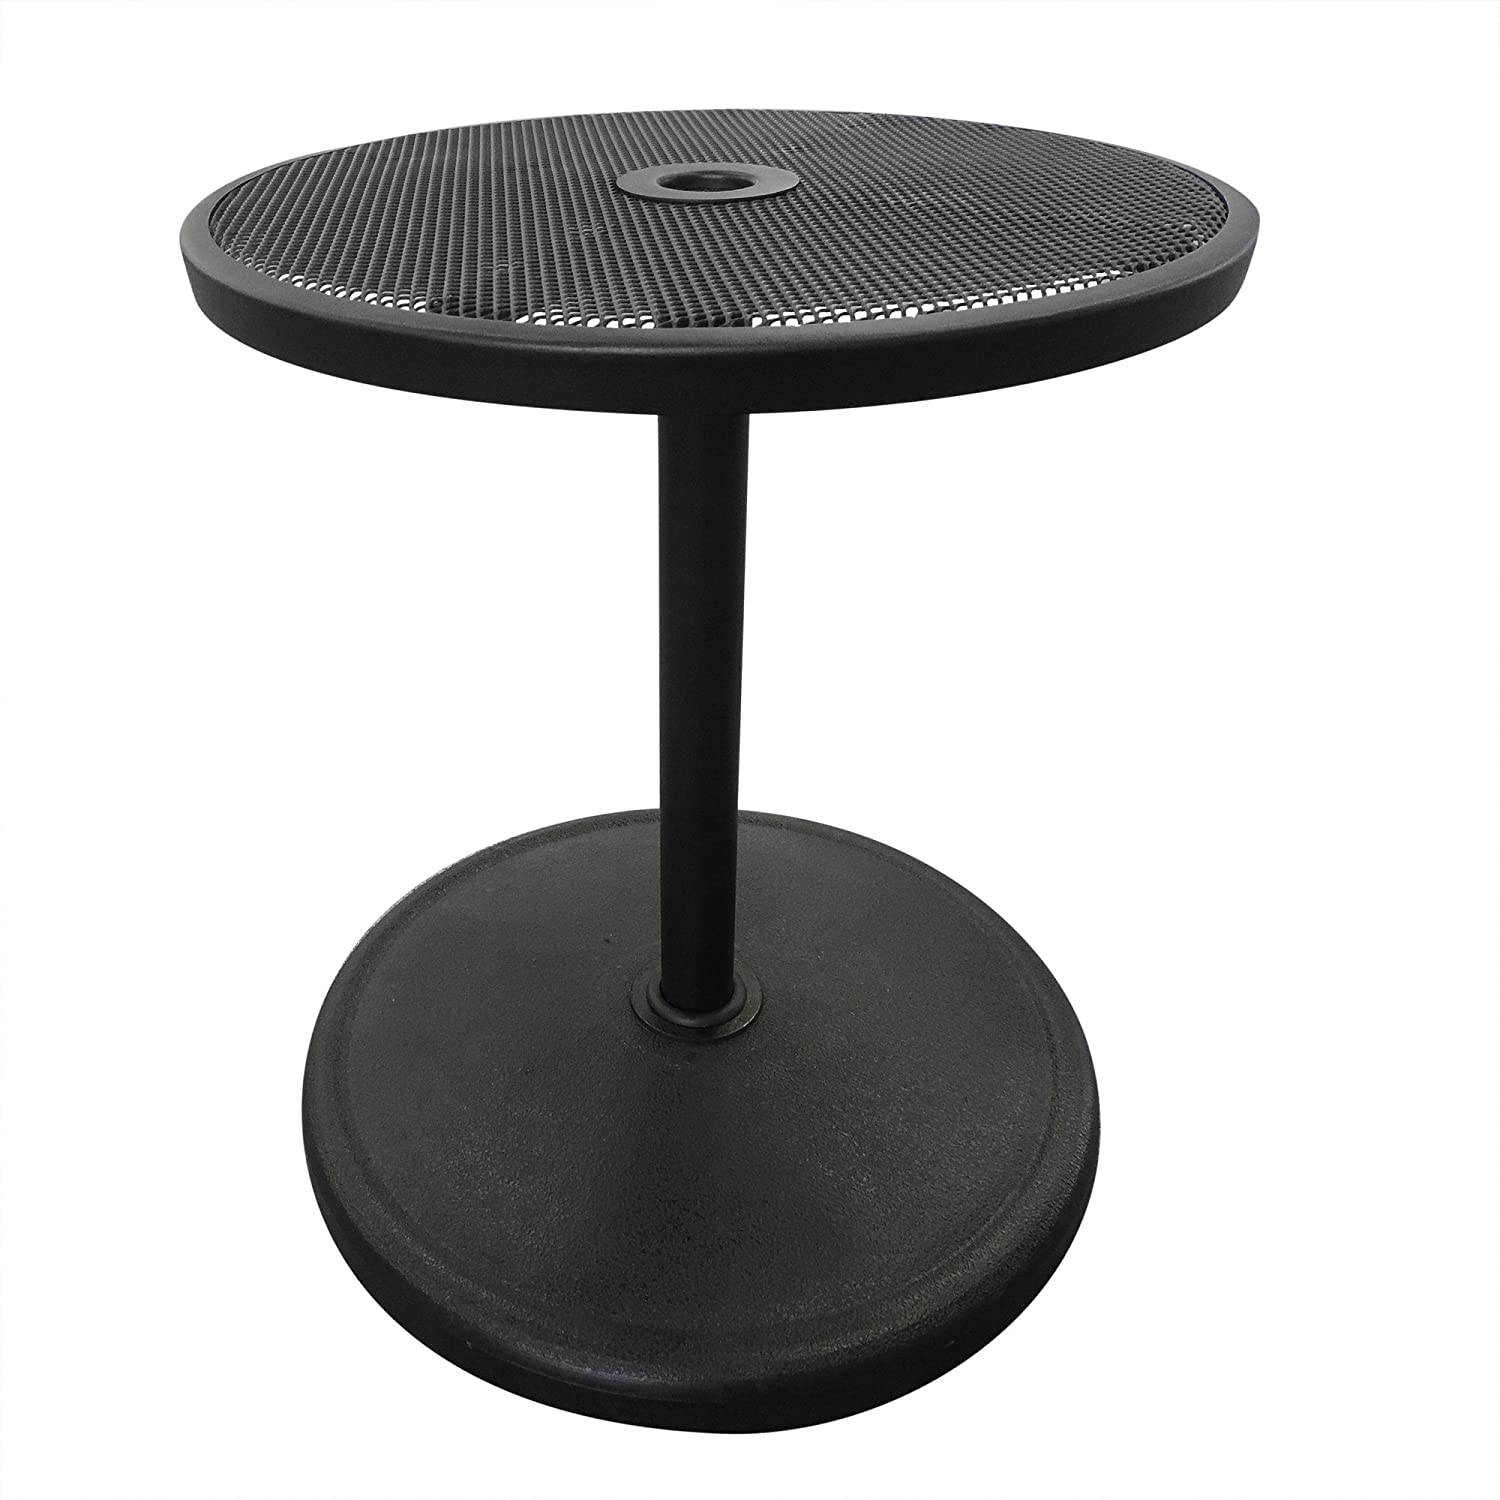 Island Umbrella NU5392 Umbrella Base with Adjustable Table Top, 19.68 x 19.68 x 44.48 , Black